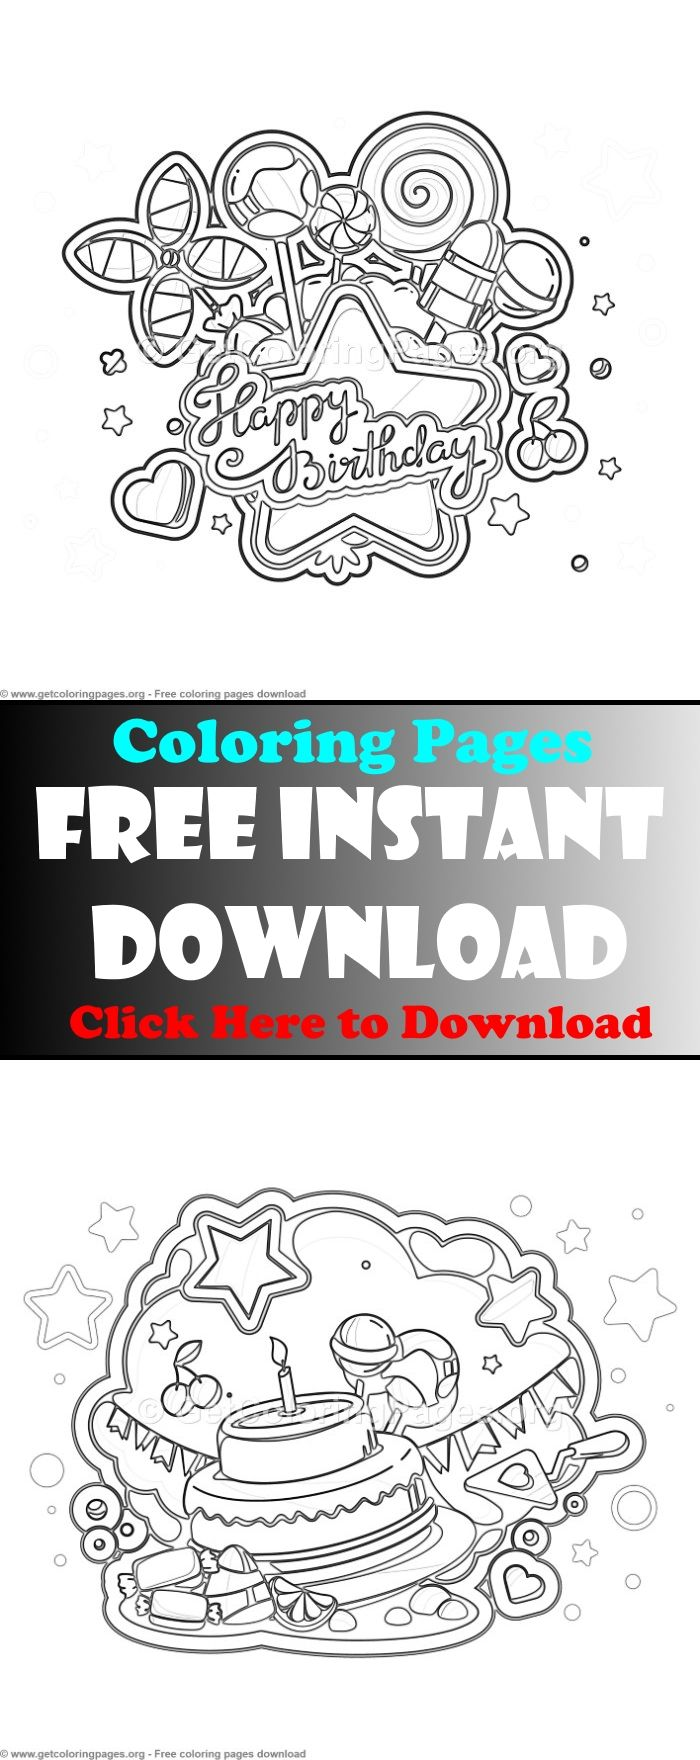 Free to download birthday card coloring pageprintable birthday